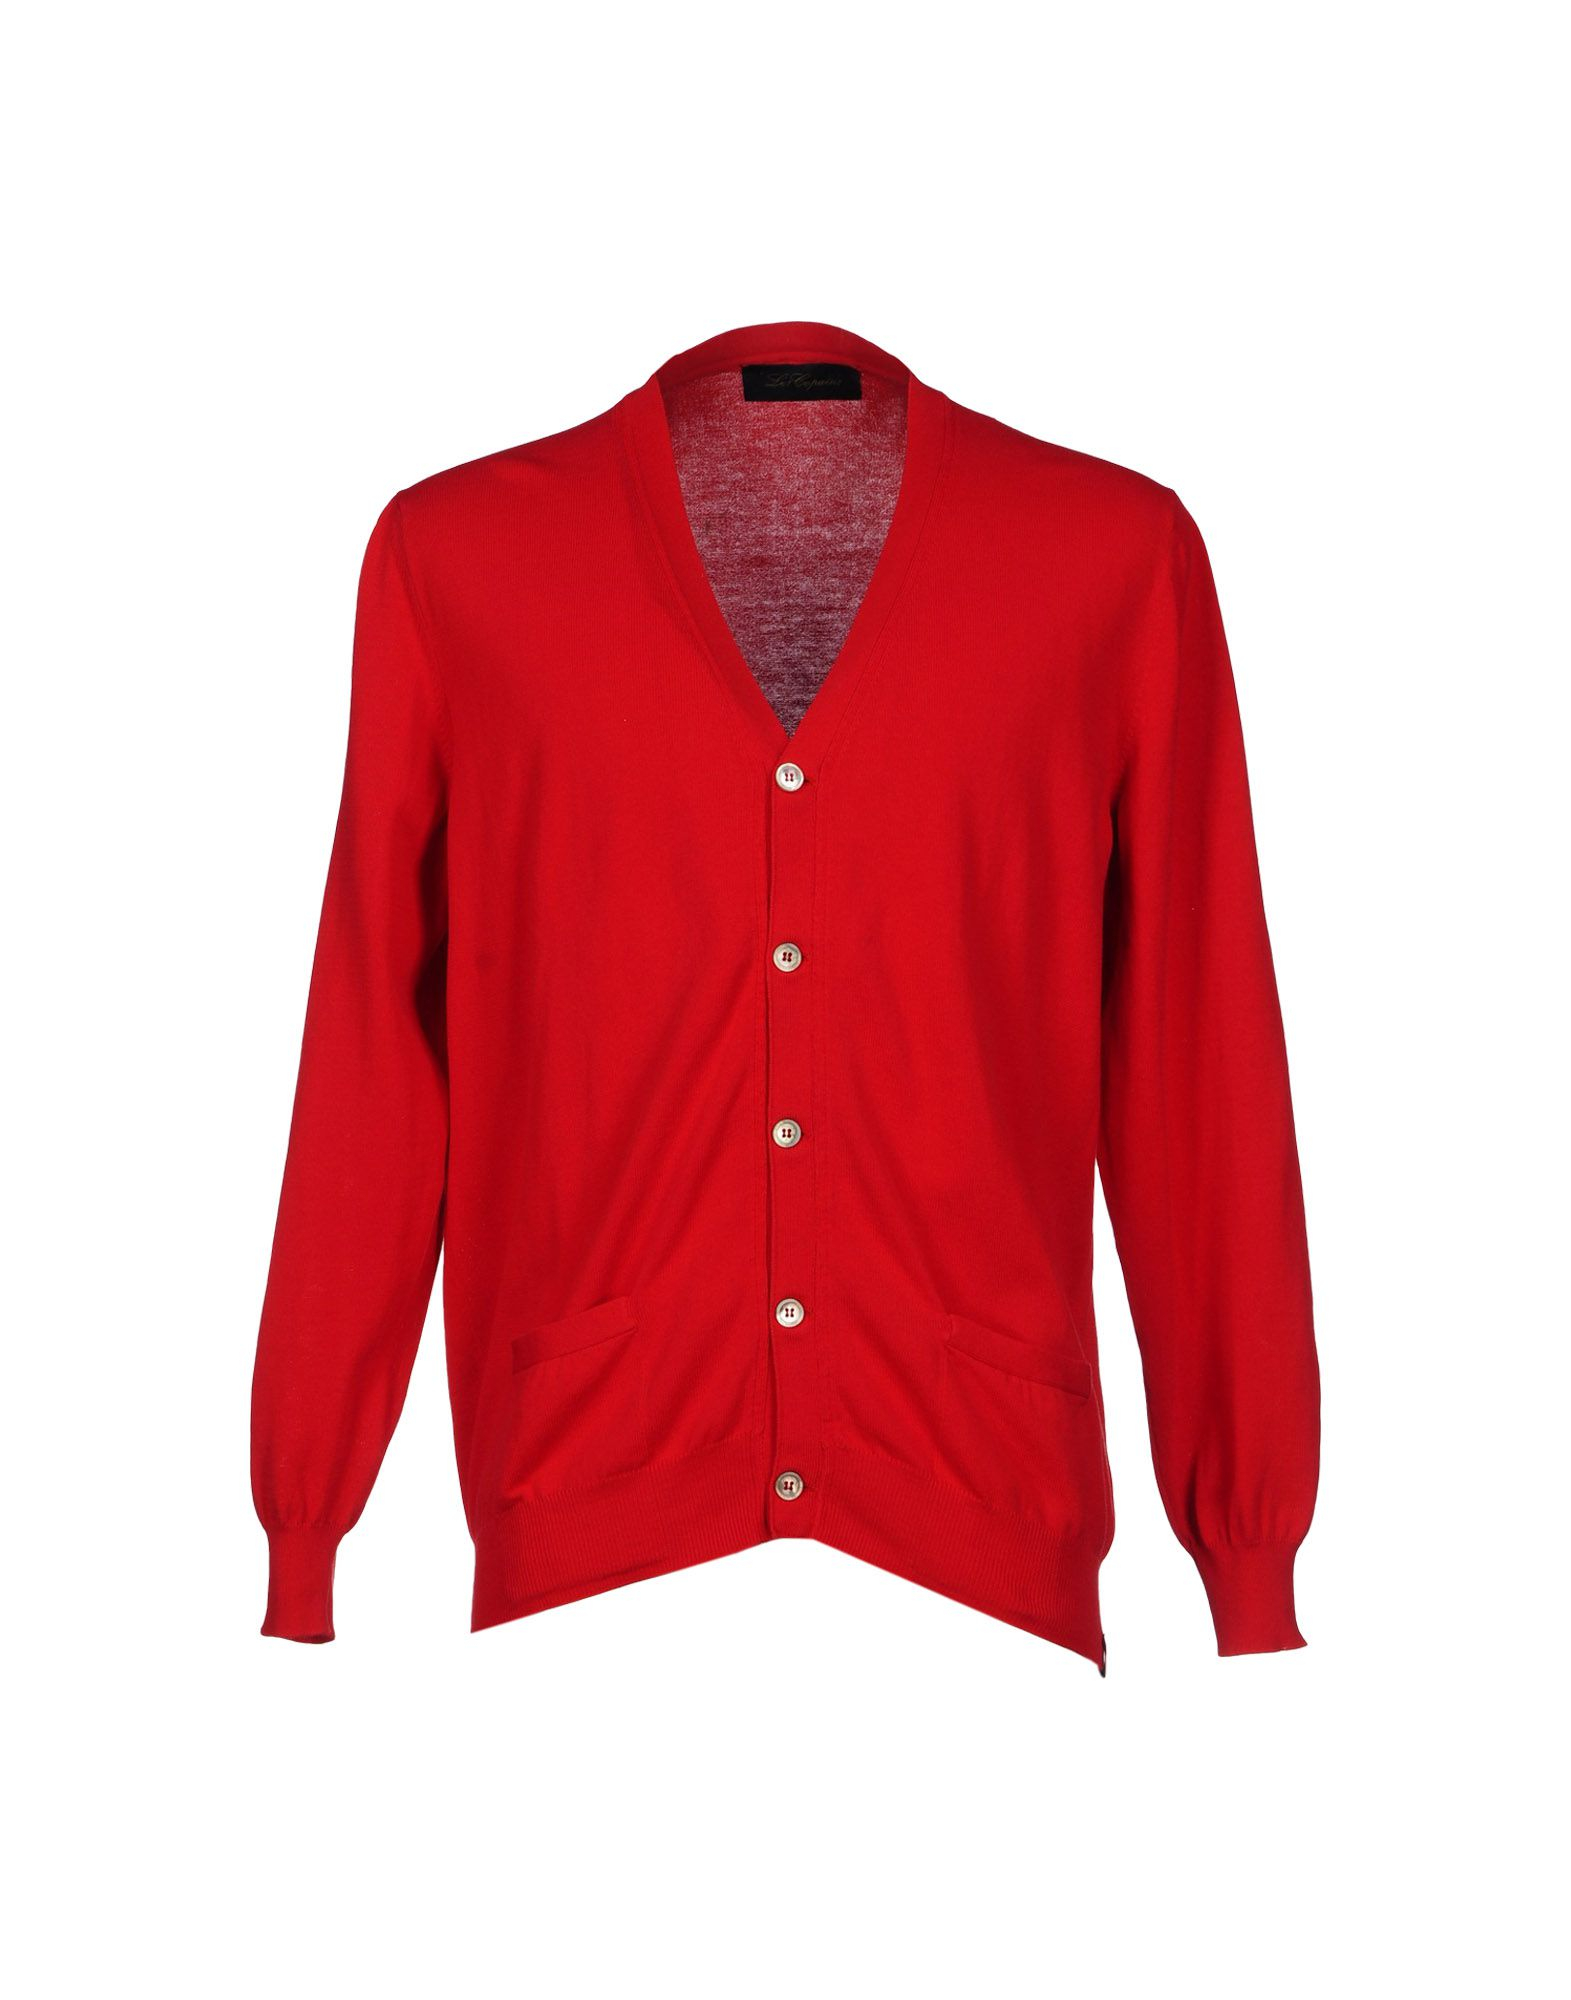 Shop online for Men's Cardigan Sweaters & Jackets at loadingbassqz.cf Find zip-front & button styles. Free Shipping. Free Returns. All the time.